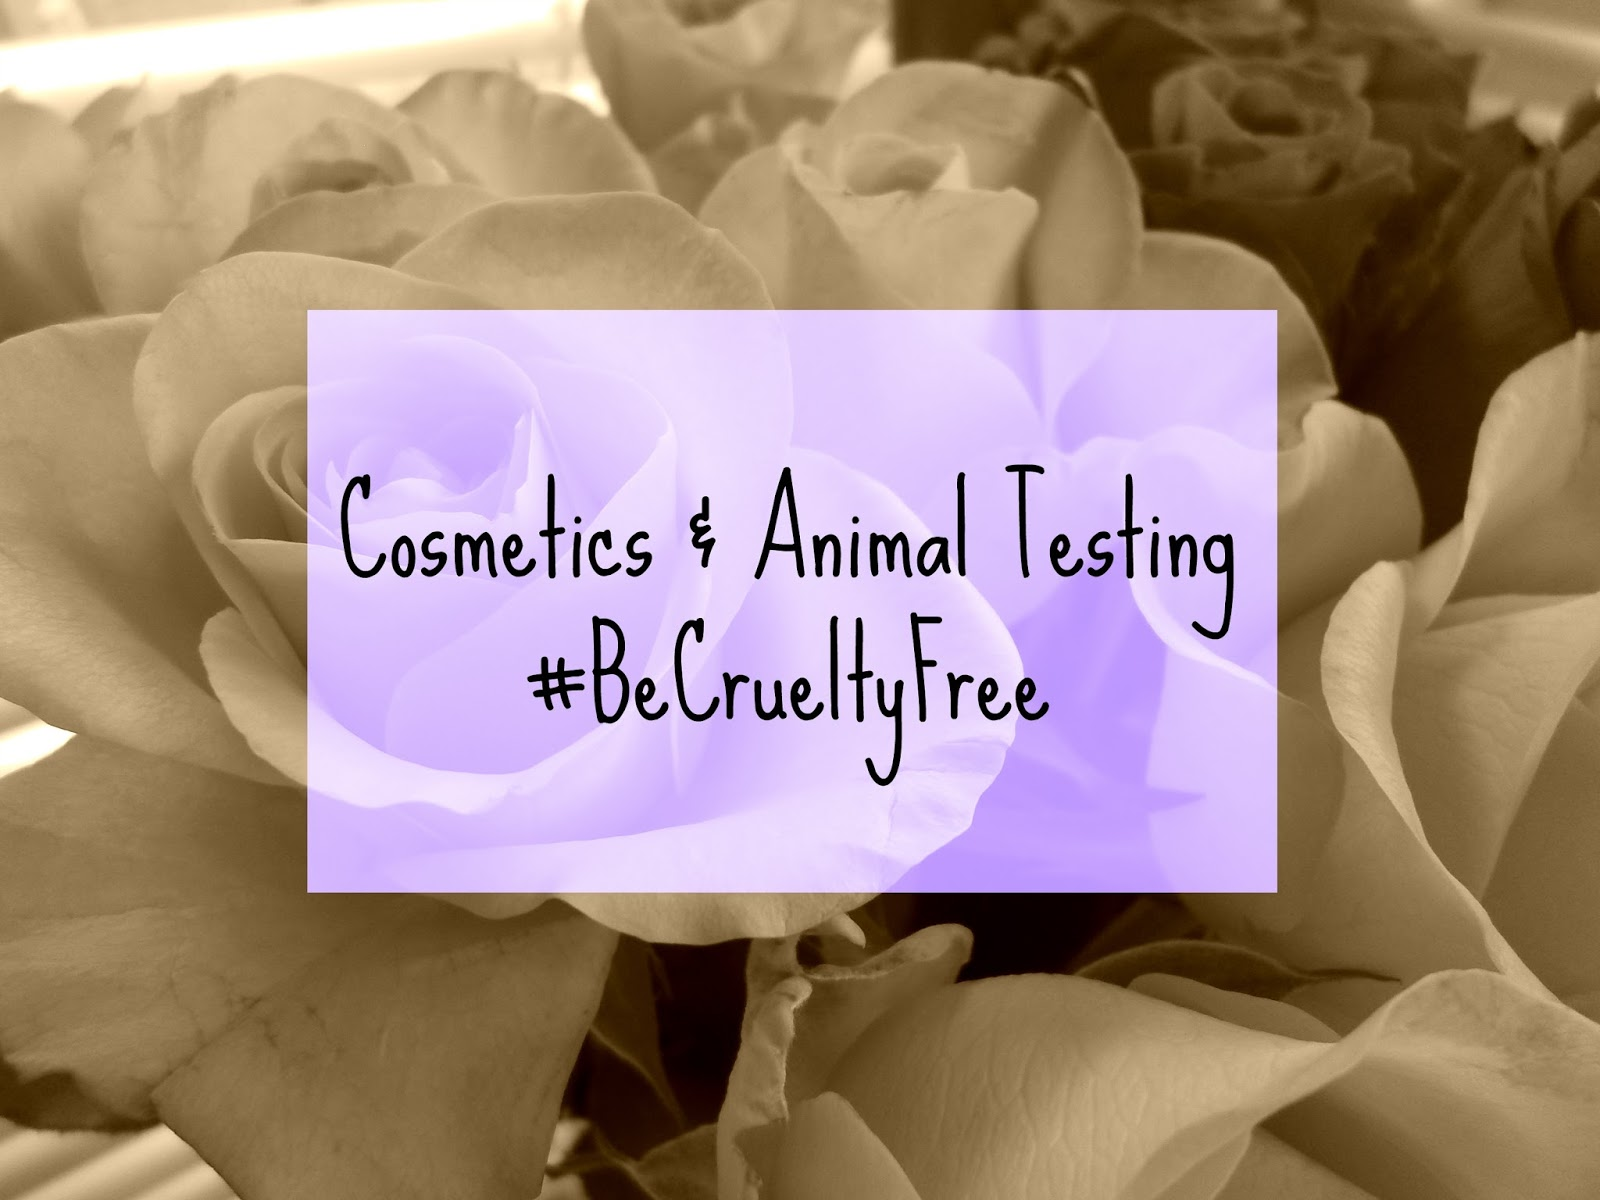 Cosmetics & Animal Testing - #BeCrueltyFree